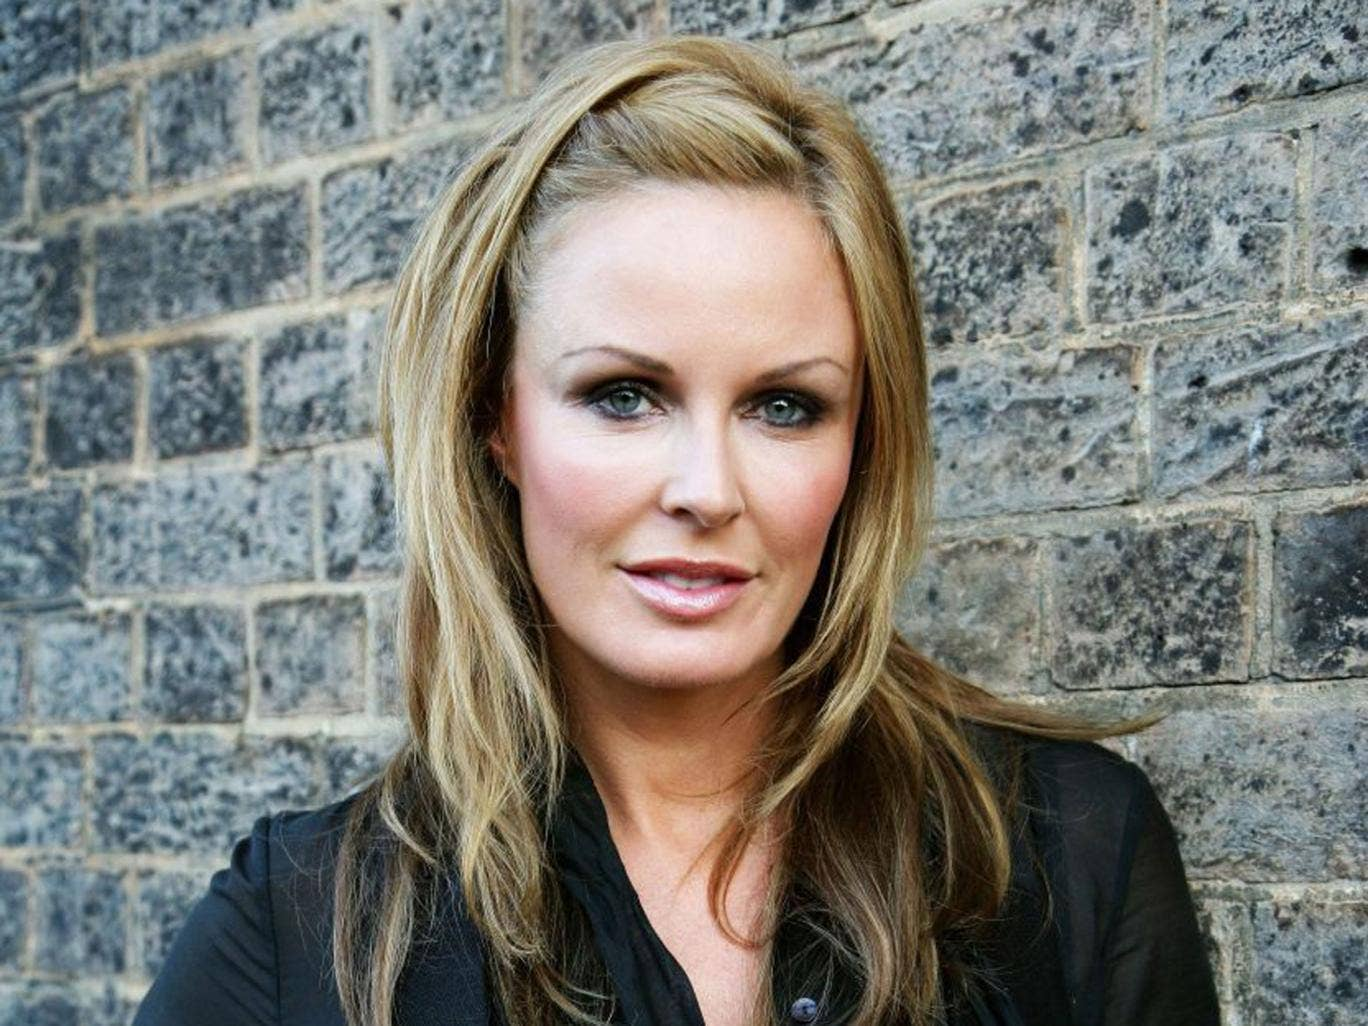 Charlotte Dawson, who had been  a victim of cyber bullying